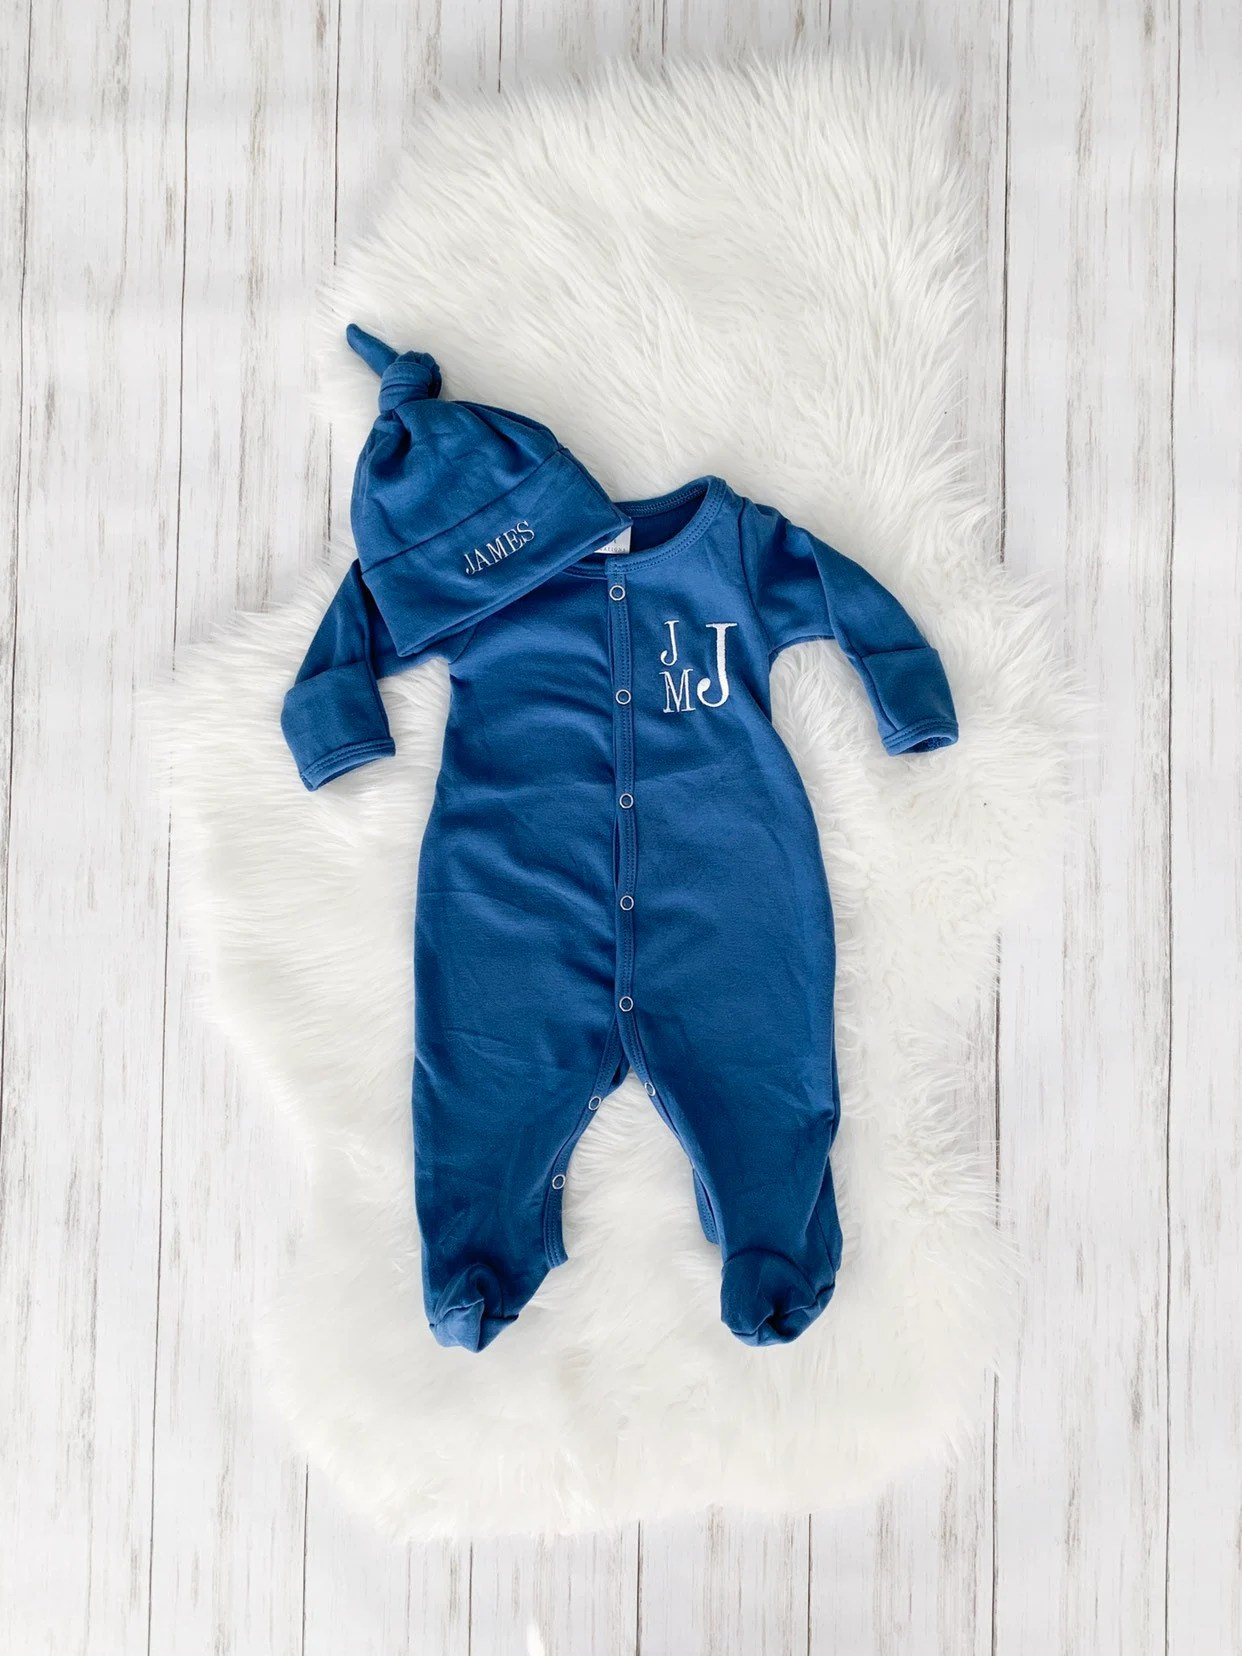 Baby Boy Take Home Outfit : outfit, Coming, Outfit, Newborn